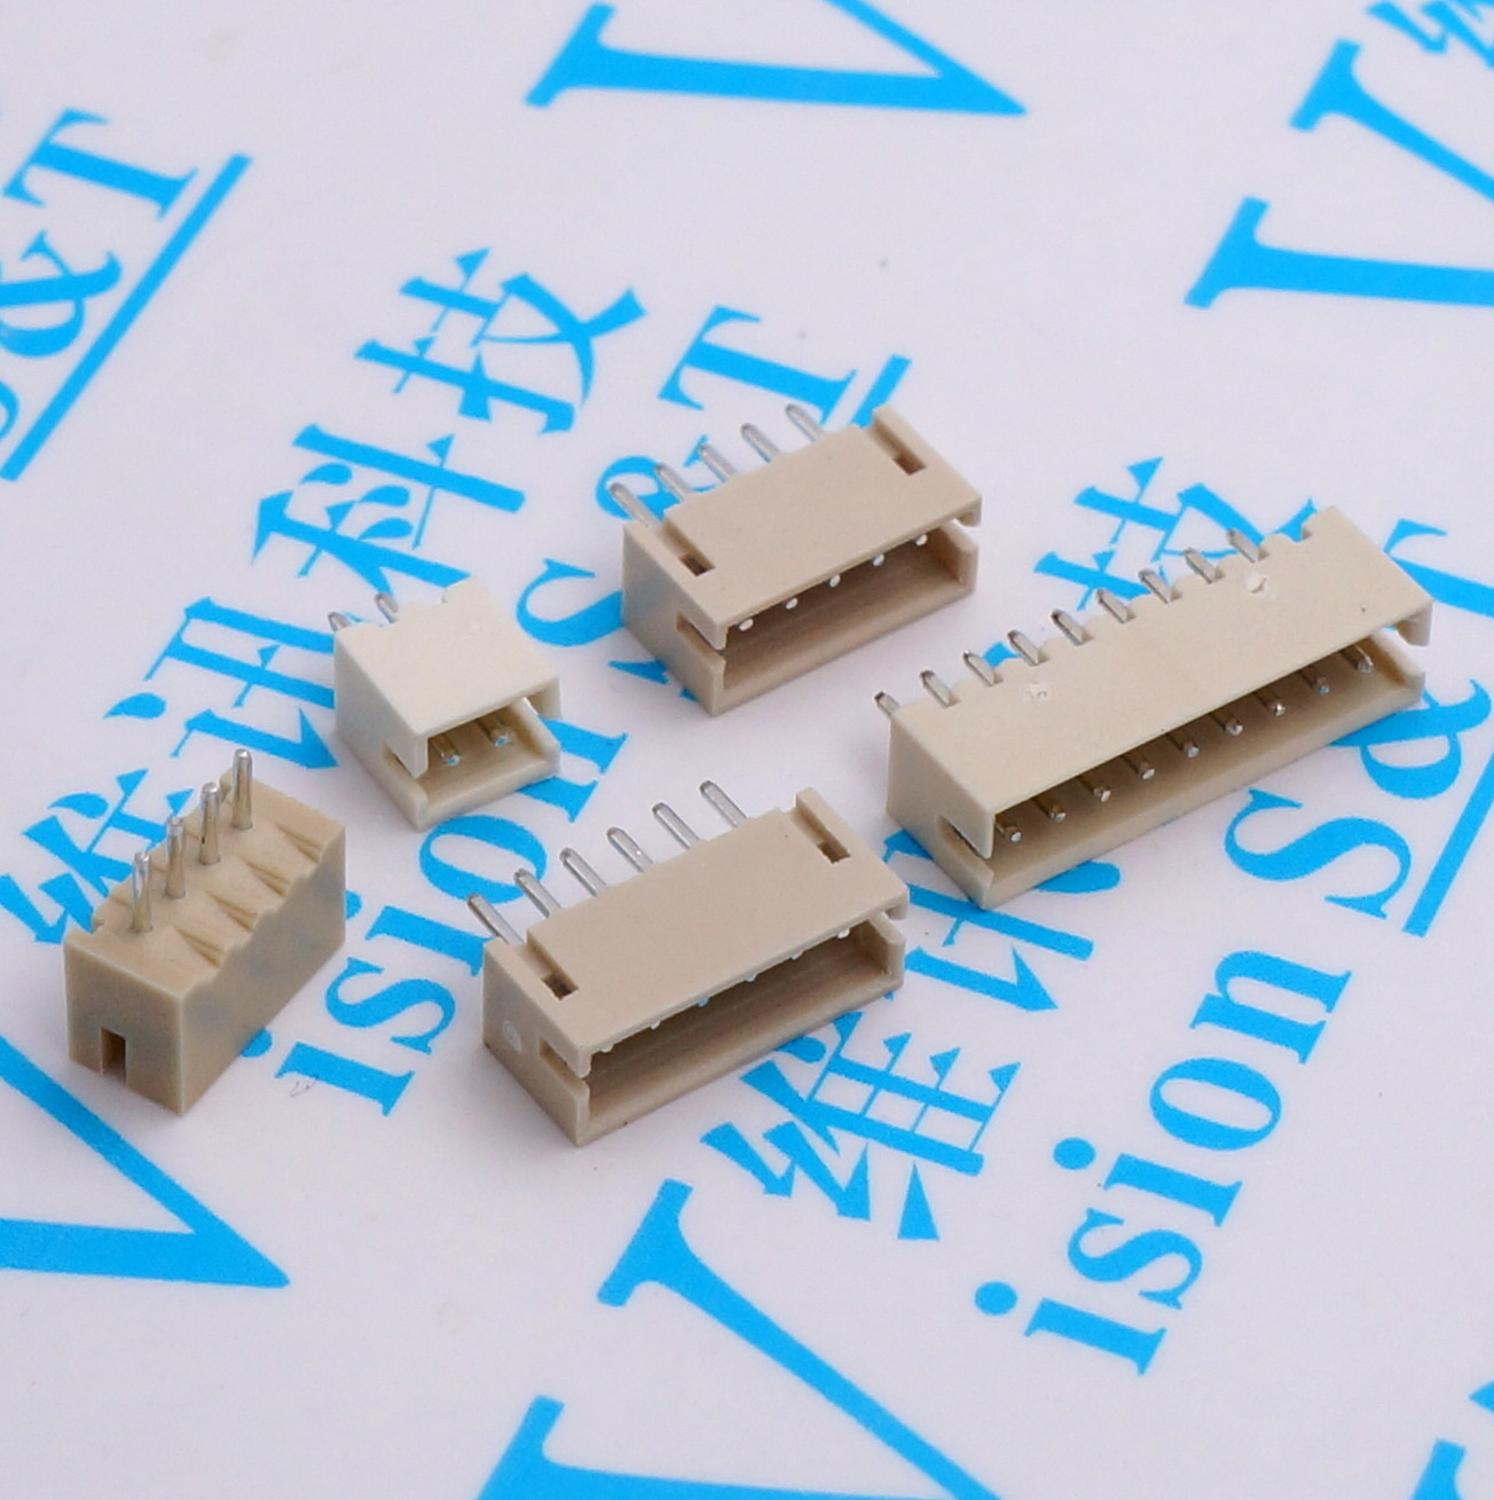 20pcs MICRO JST <font><b>Connector</b></font> <font><b>1.5MM</b></font> Pitch pin header 2P/3P/4P/5P/6P/7P/8P/9P Straight needle FOR PCB BOARD ZH 1.5 image